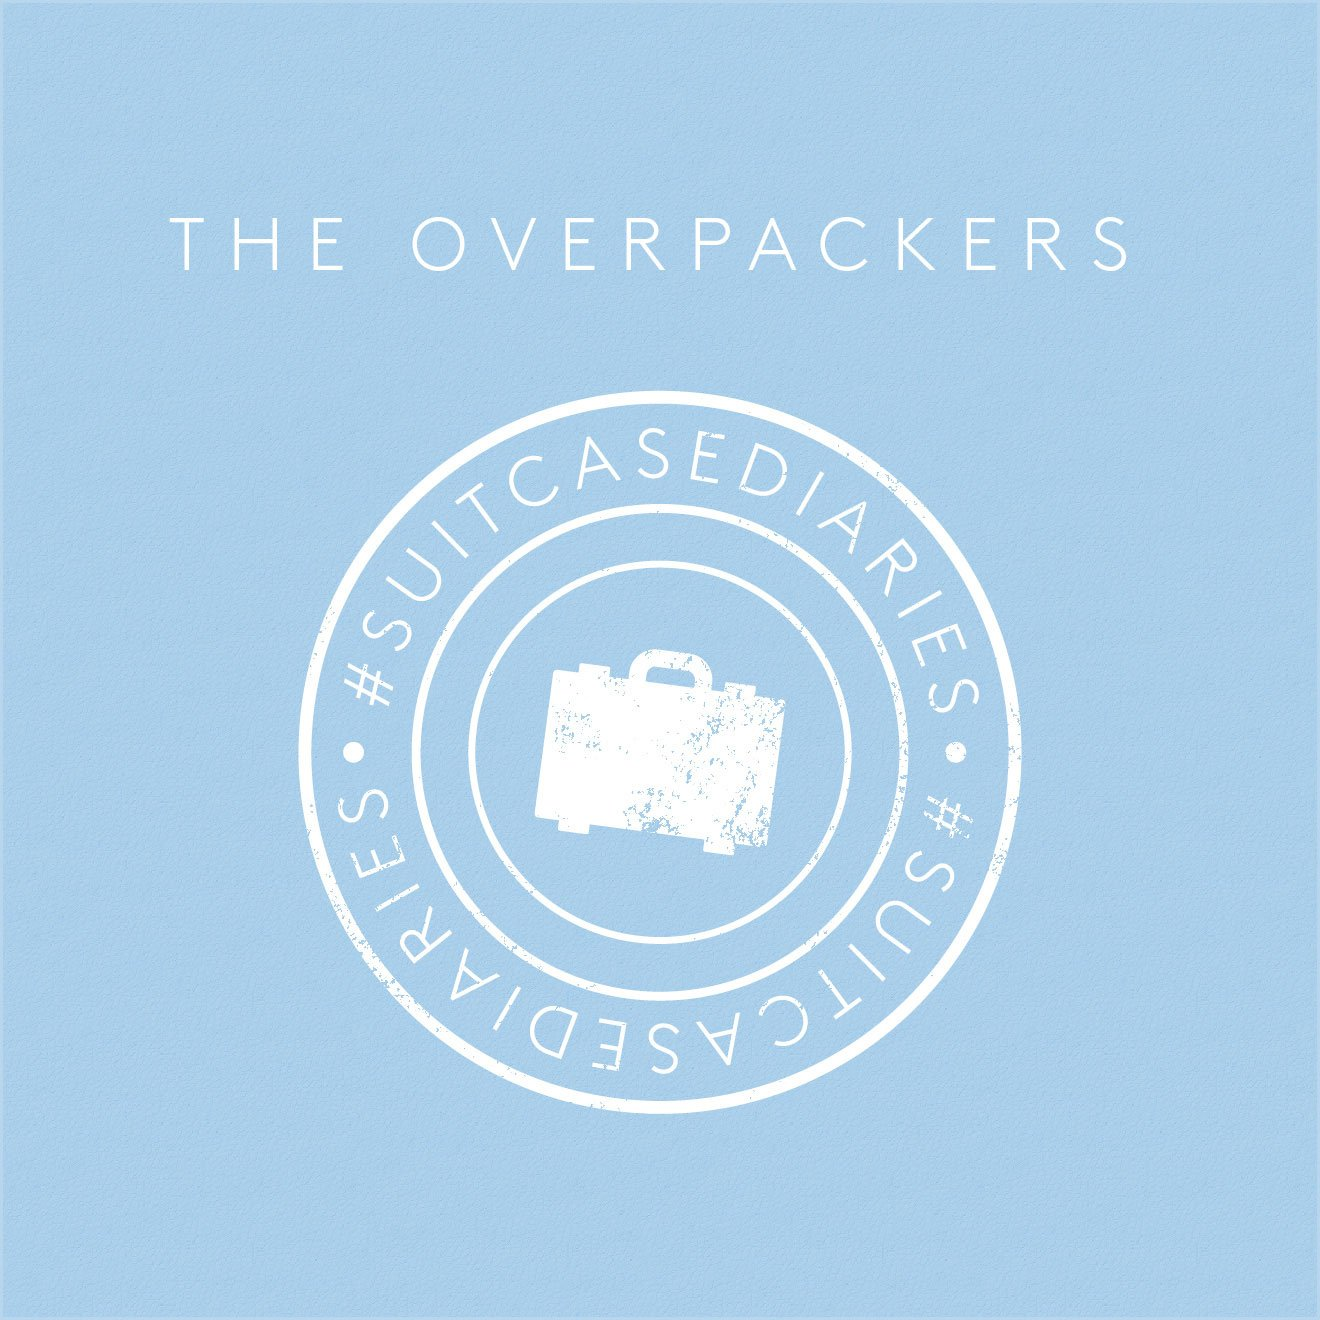 Meet The Overpackers